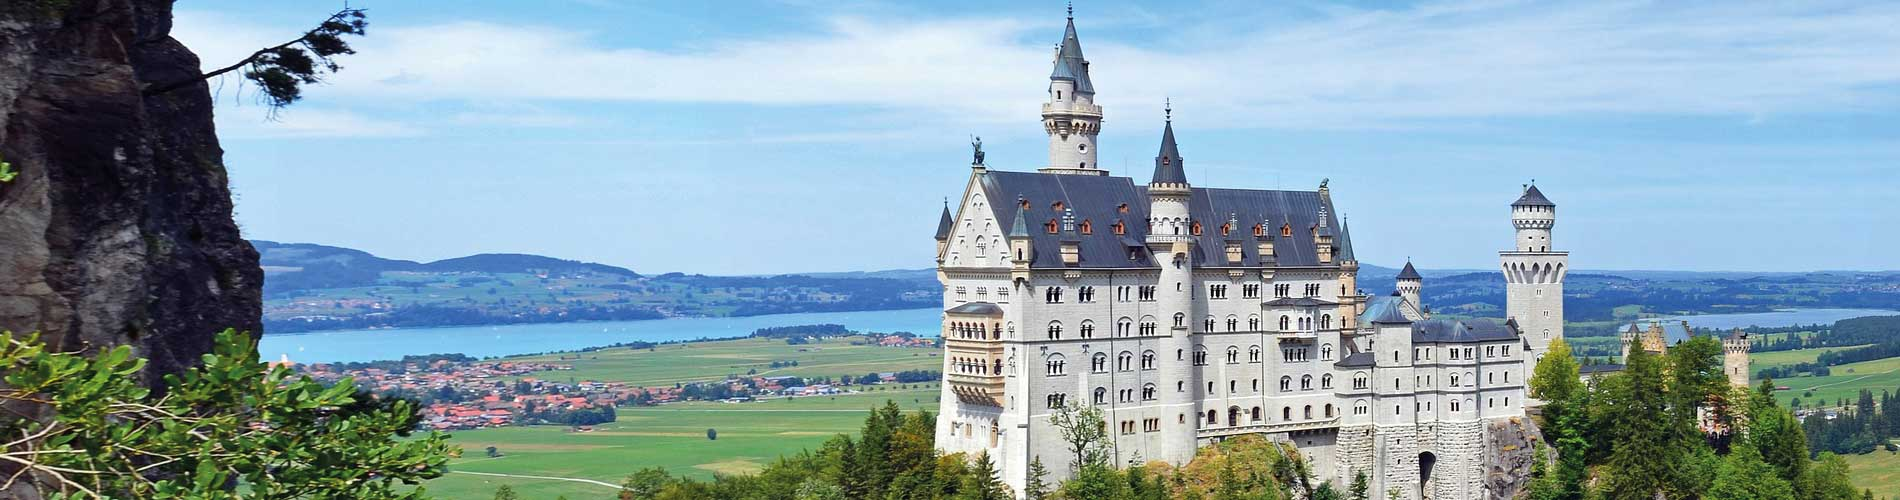 Blog_TopCastlesGermany_Neuschwanstein-Castle_1900x500